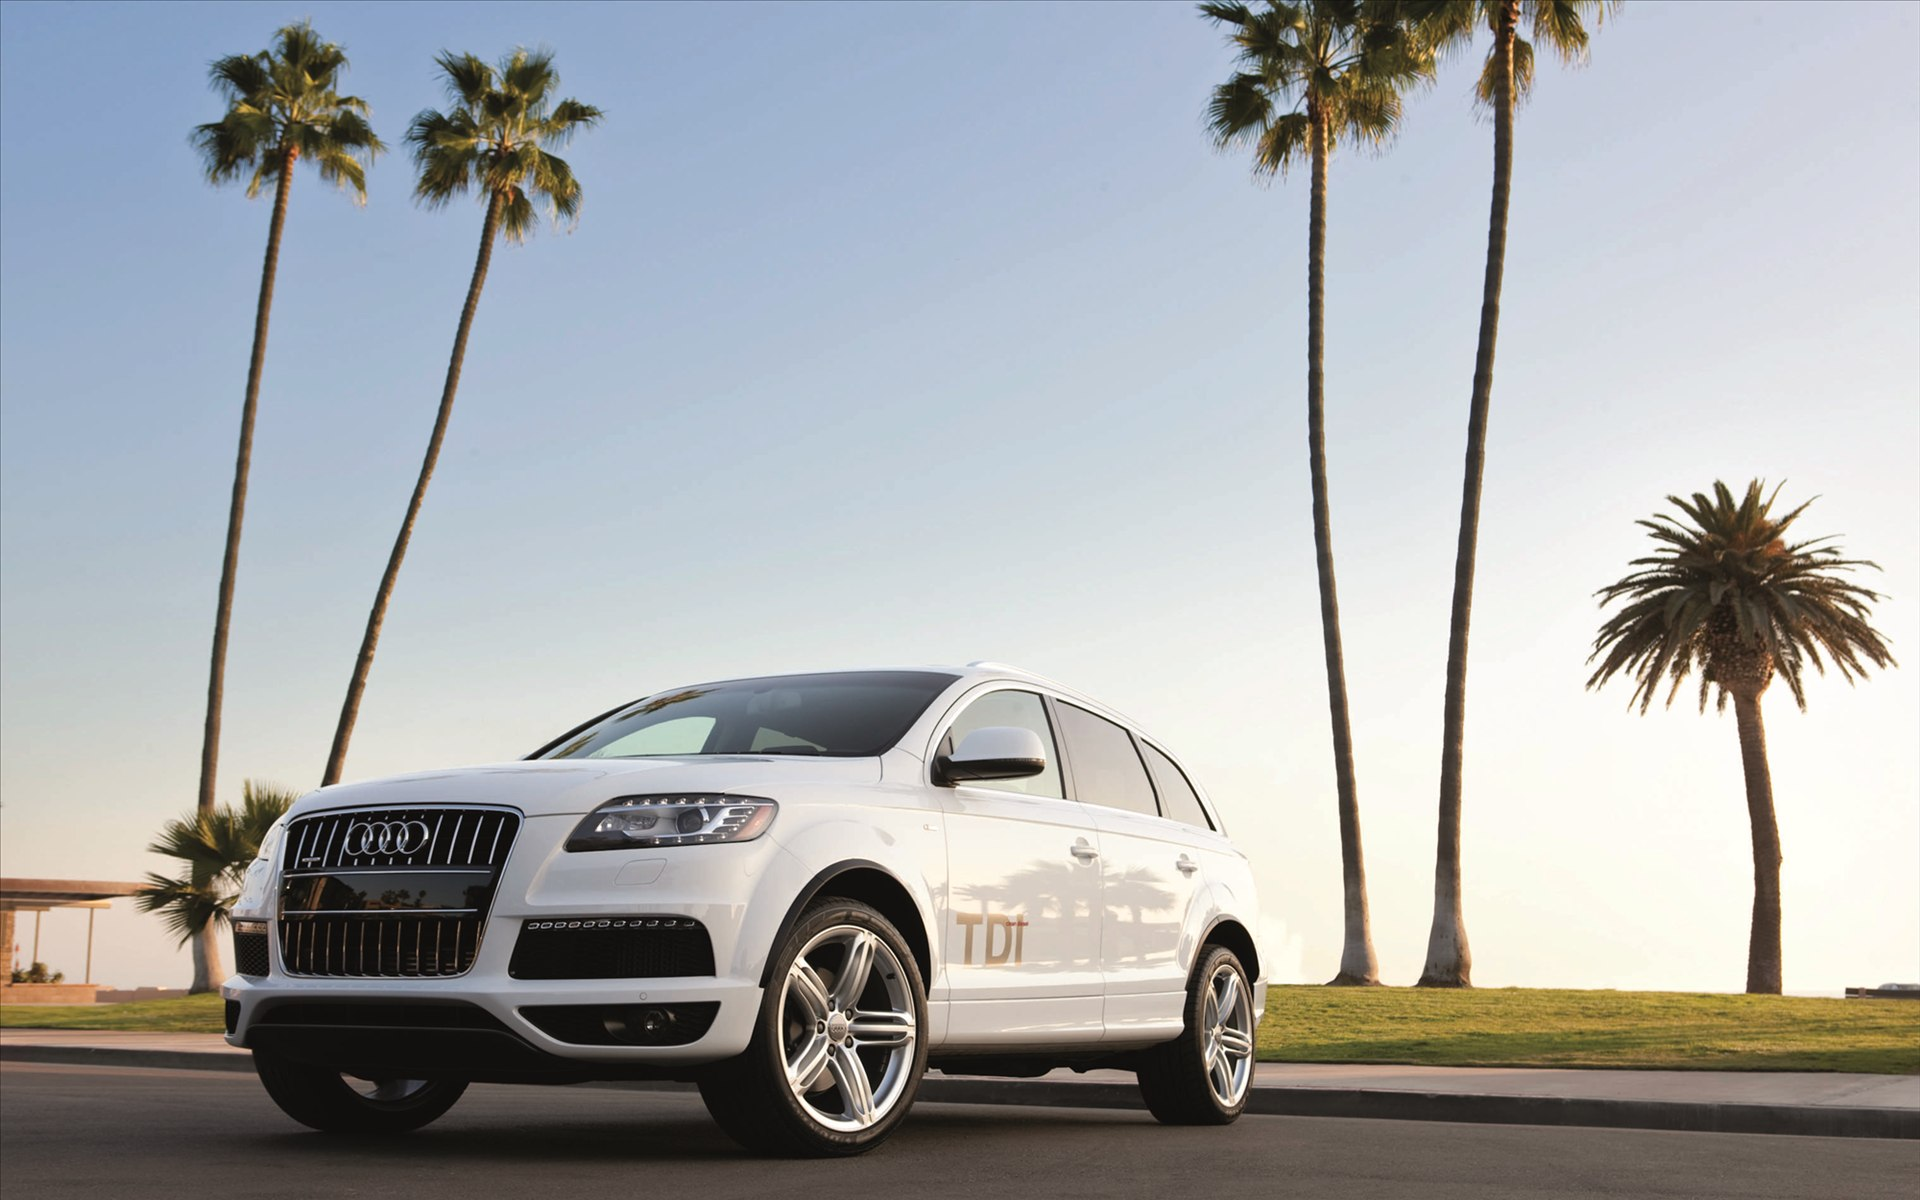 Top Audi Q7 Photos and Pictures, Audi Q7 High Quality Wallpapers